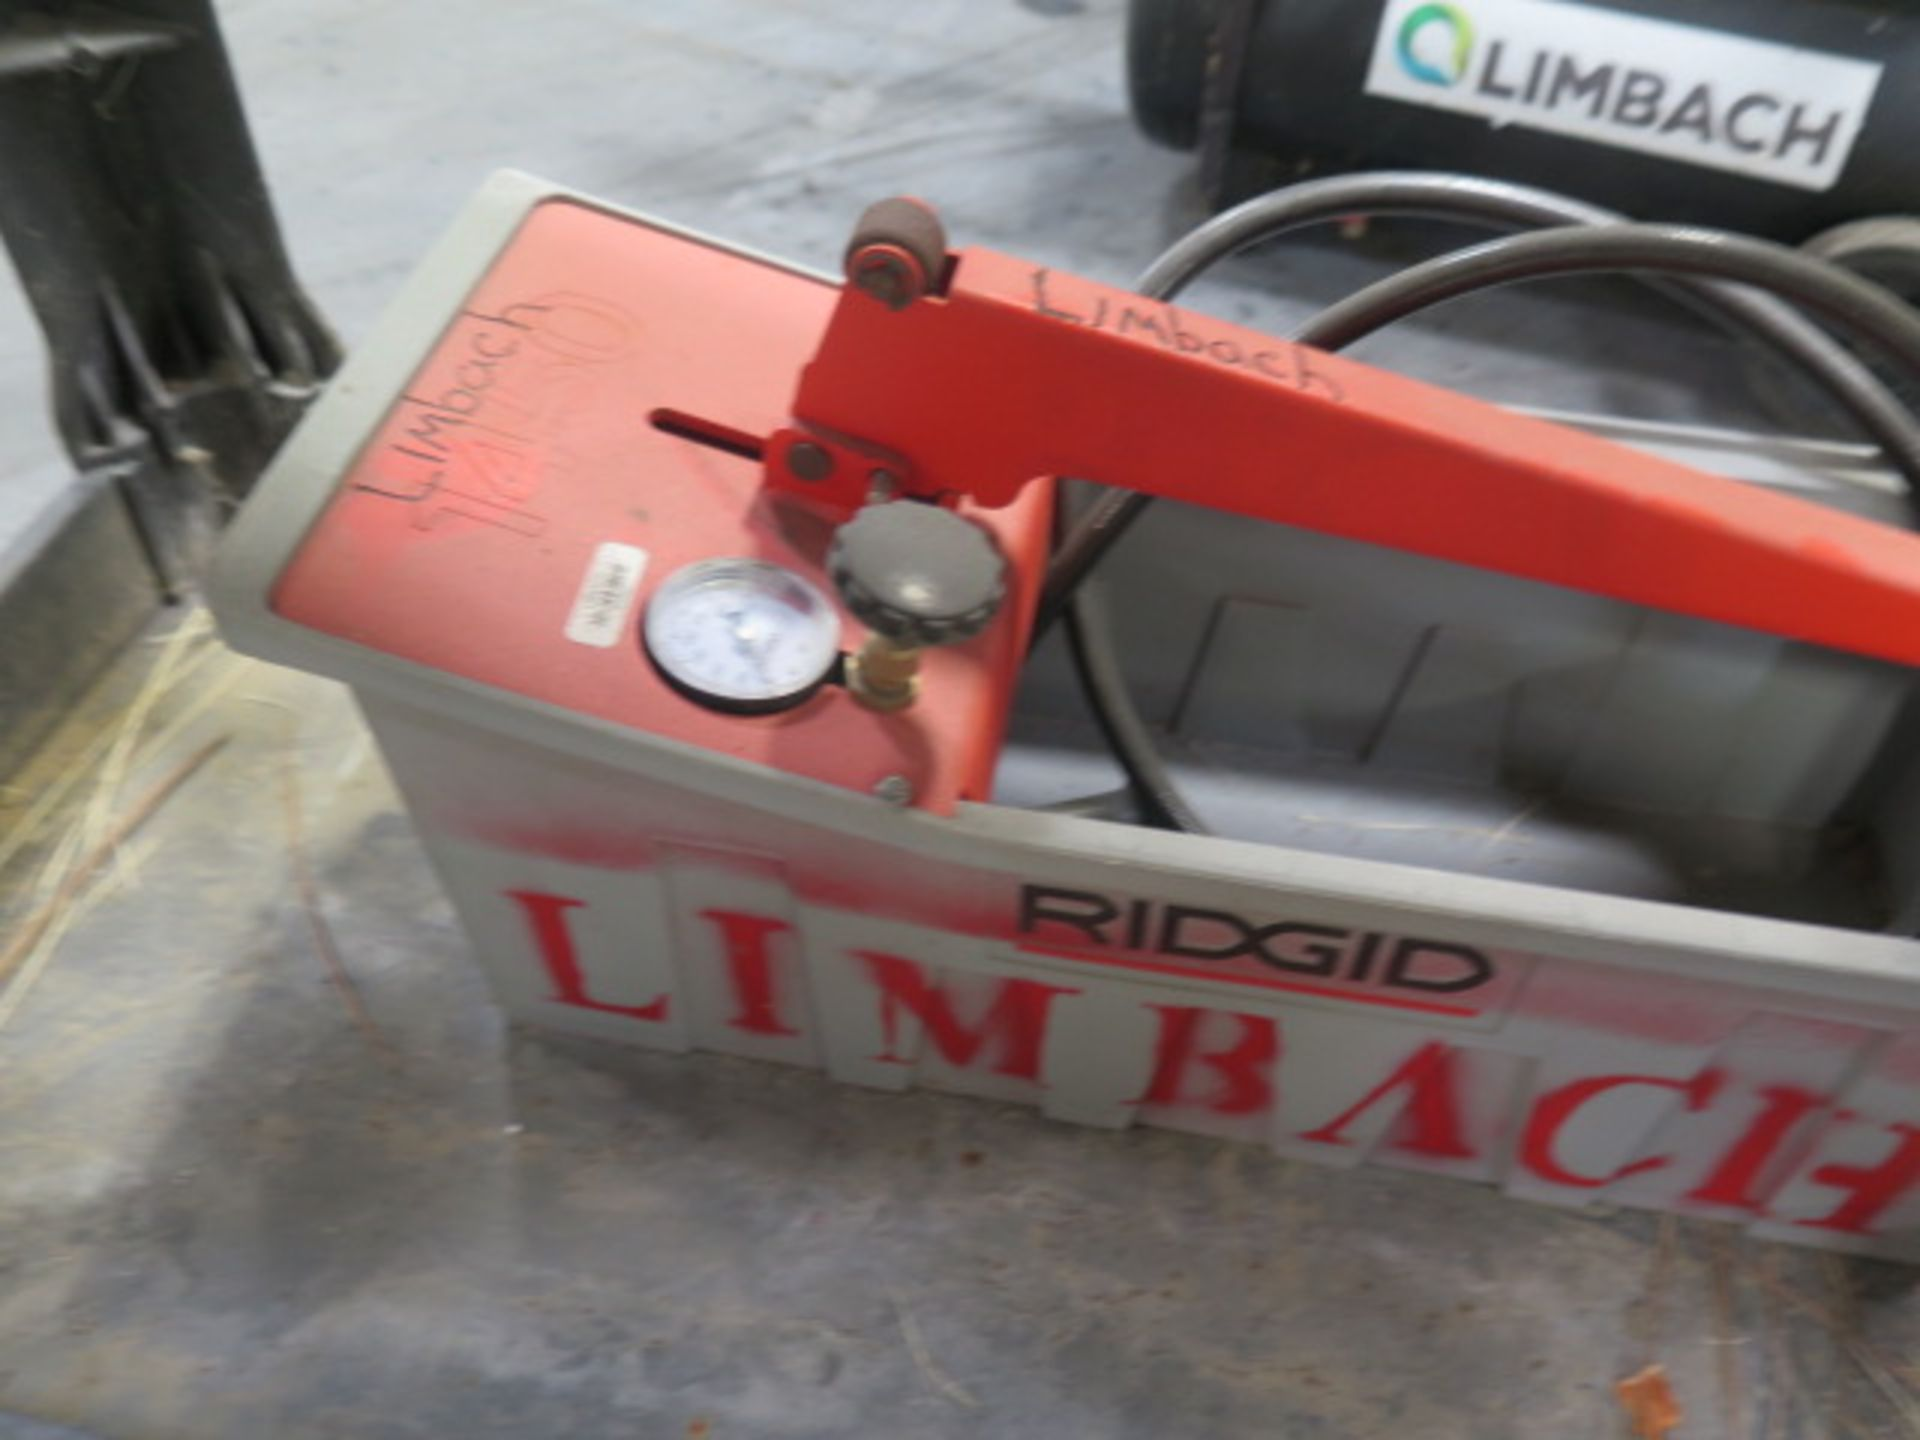 Ridgid 725 PSI Pressure Test Pumps (2) (SOLD AS-IS - NO WARRANTY) - Image 7 of 7